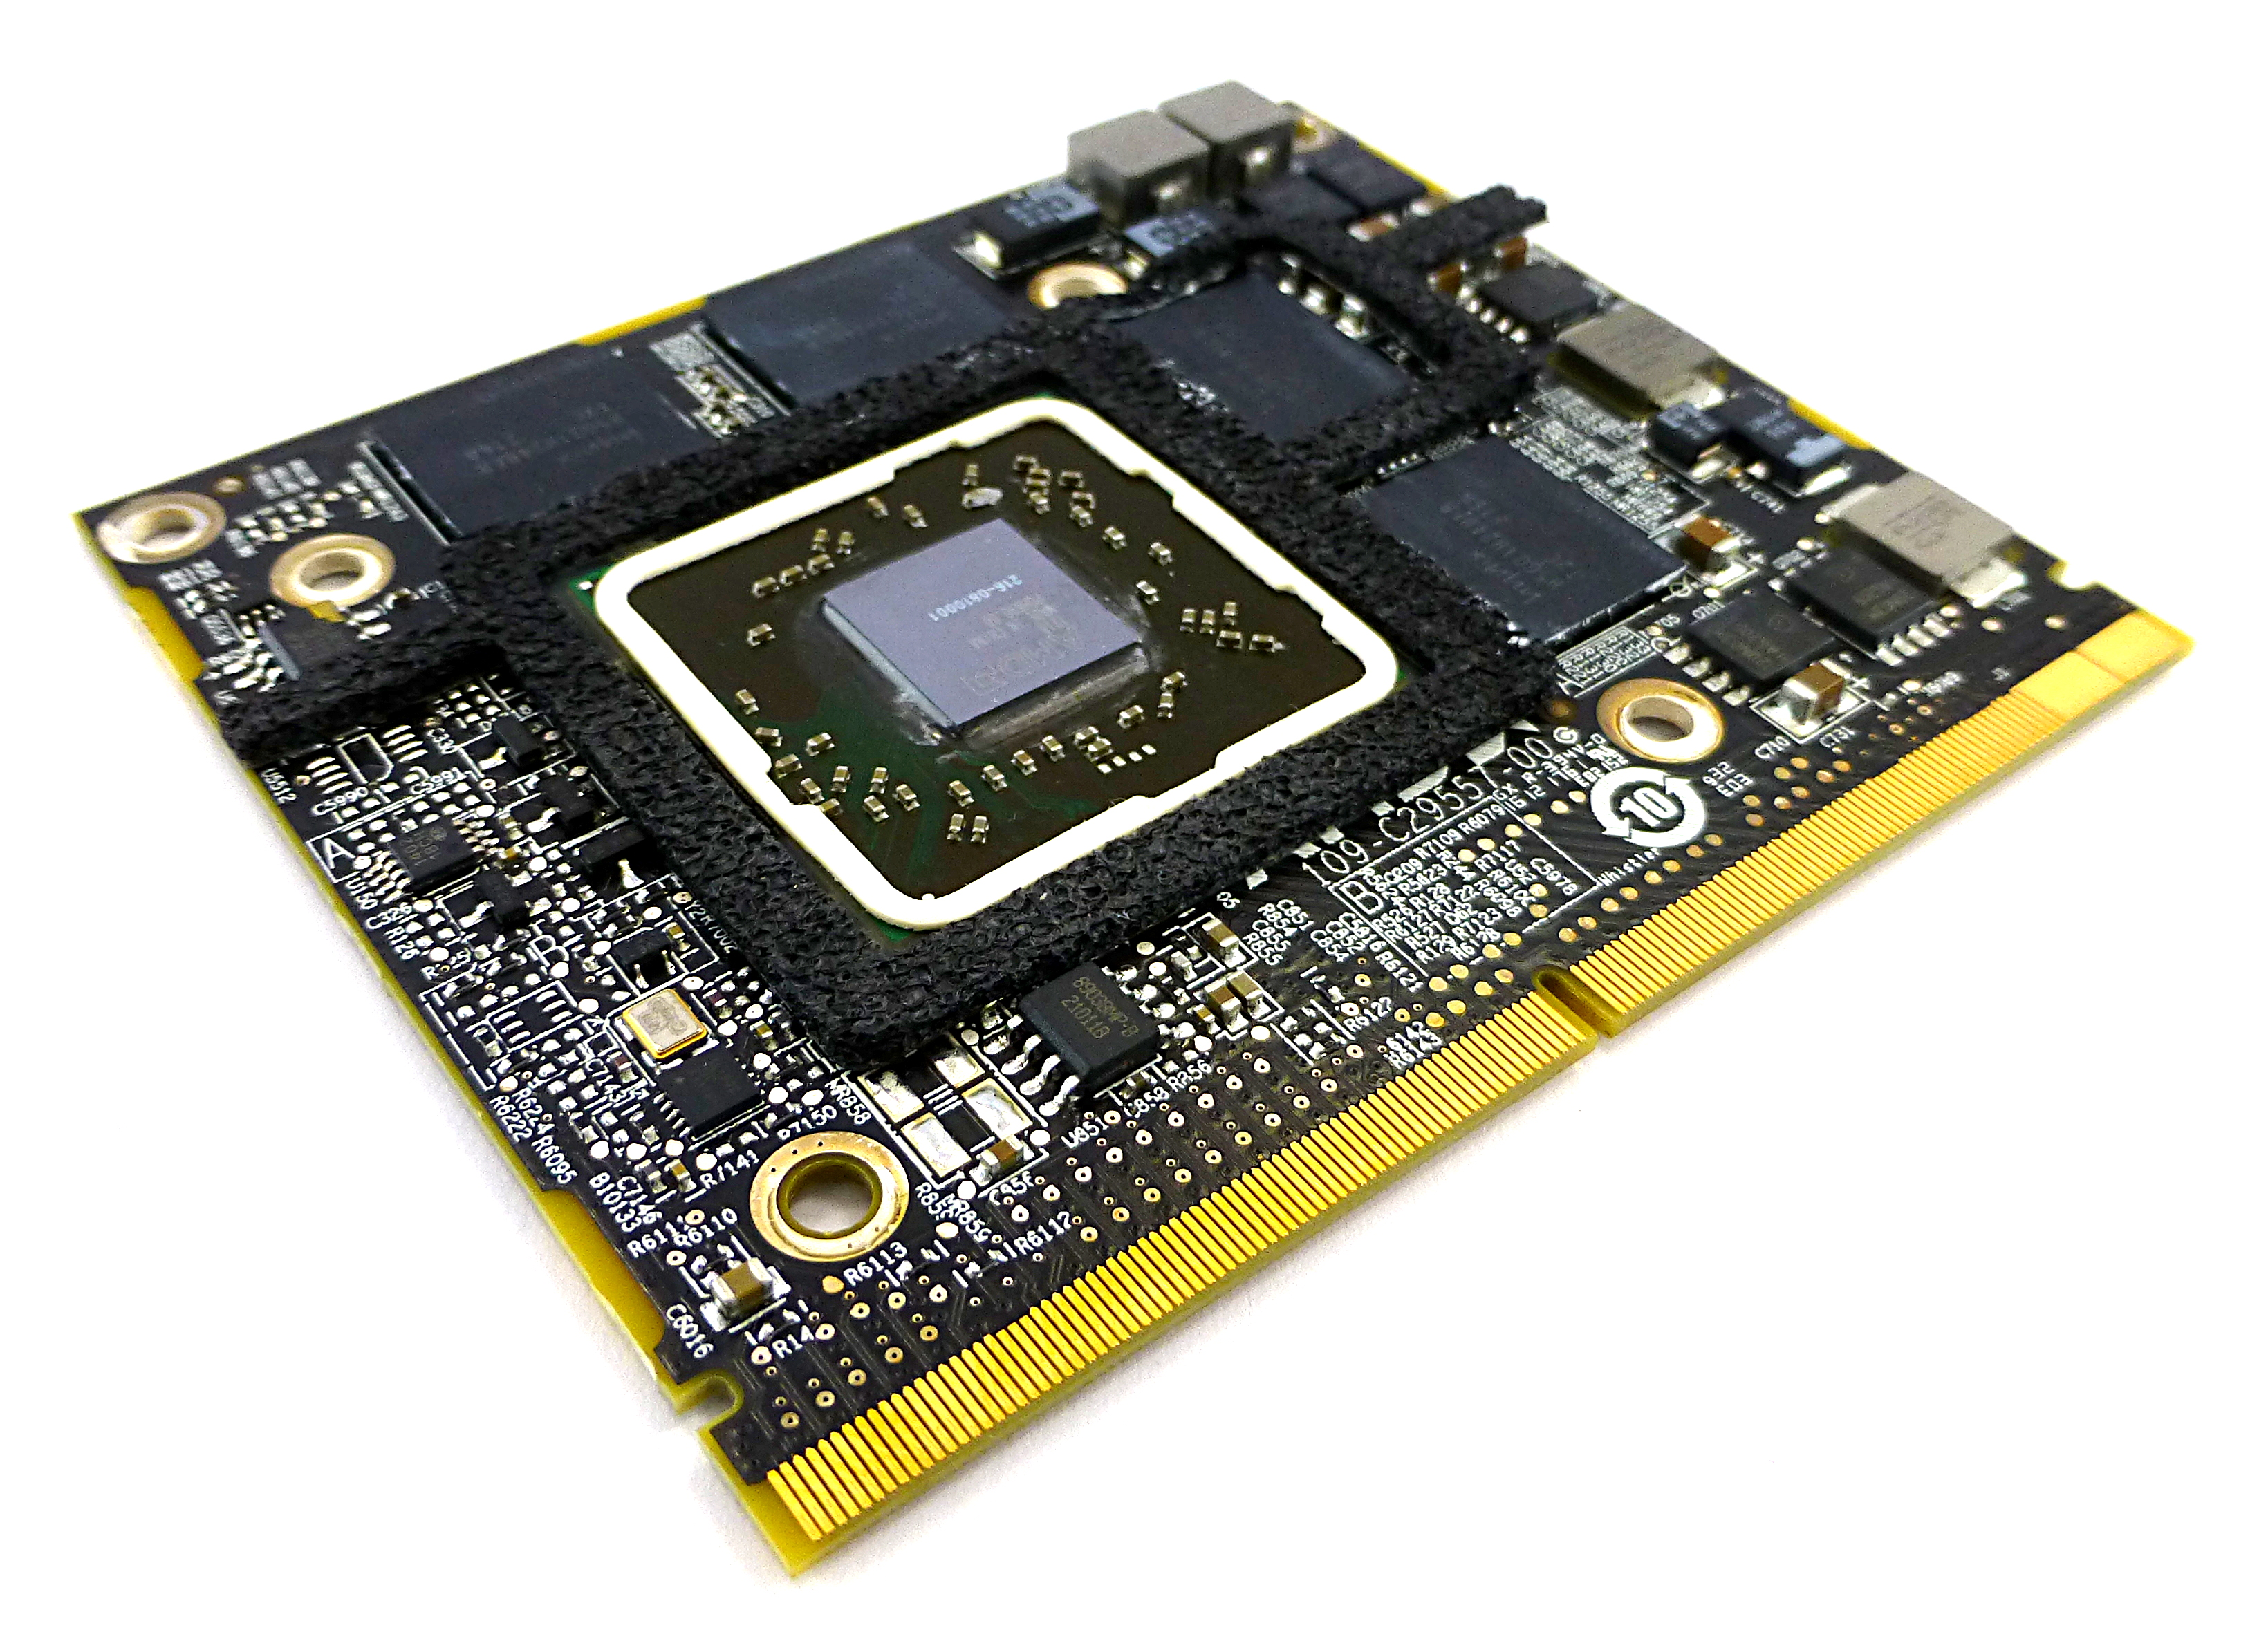 3PPINMA00D0 Apple iMac 512MB Radeon HD 6770M Graphics Card 109-C29557-00